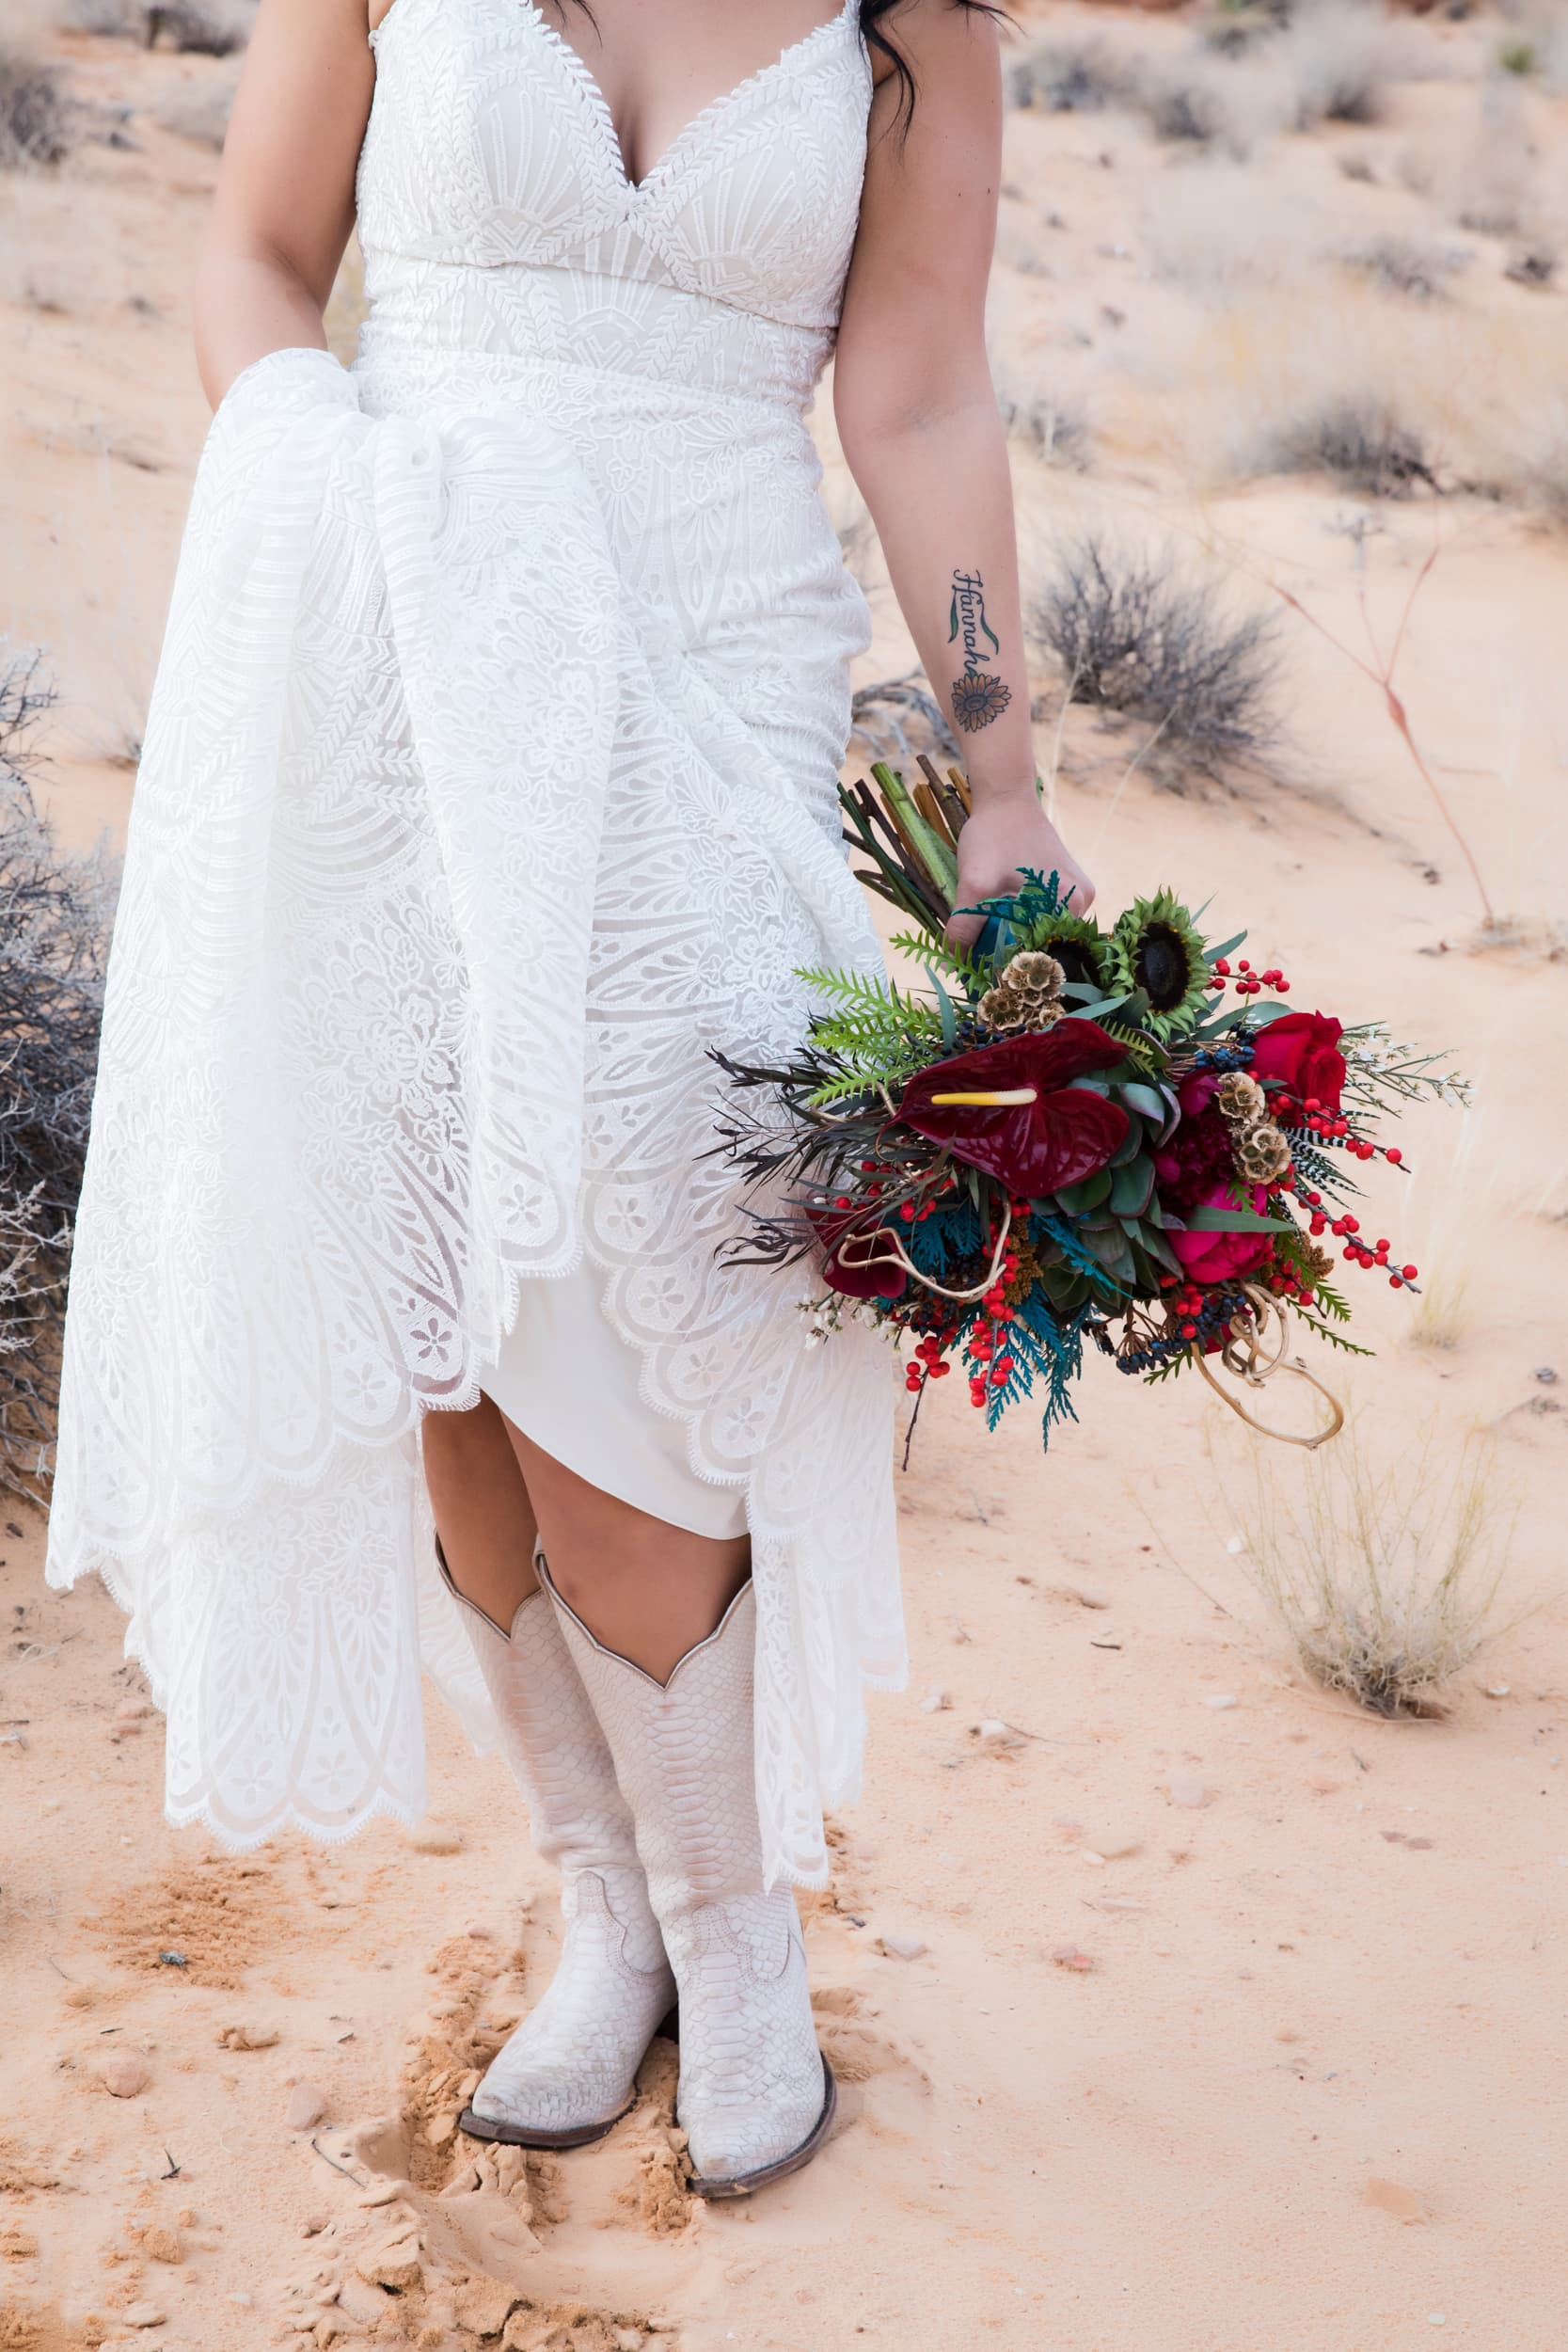 Bride in wedding cowboy boots holding gorgeous red bouquet.